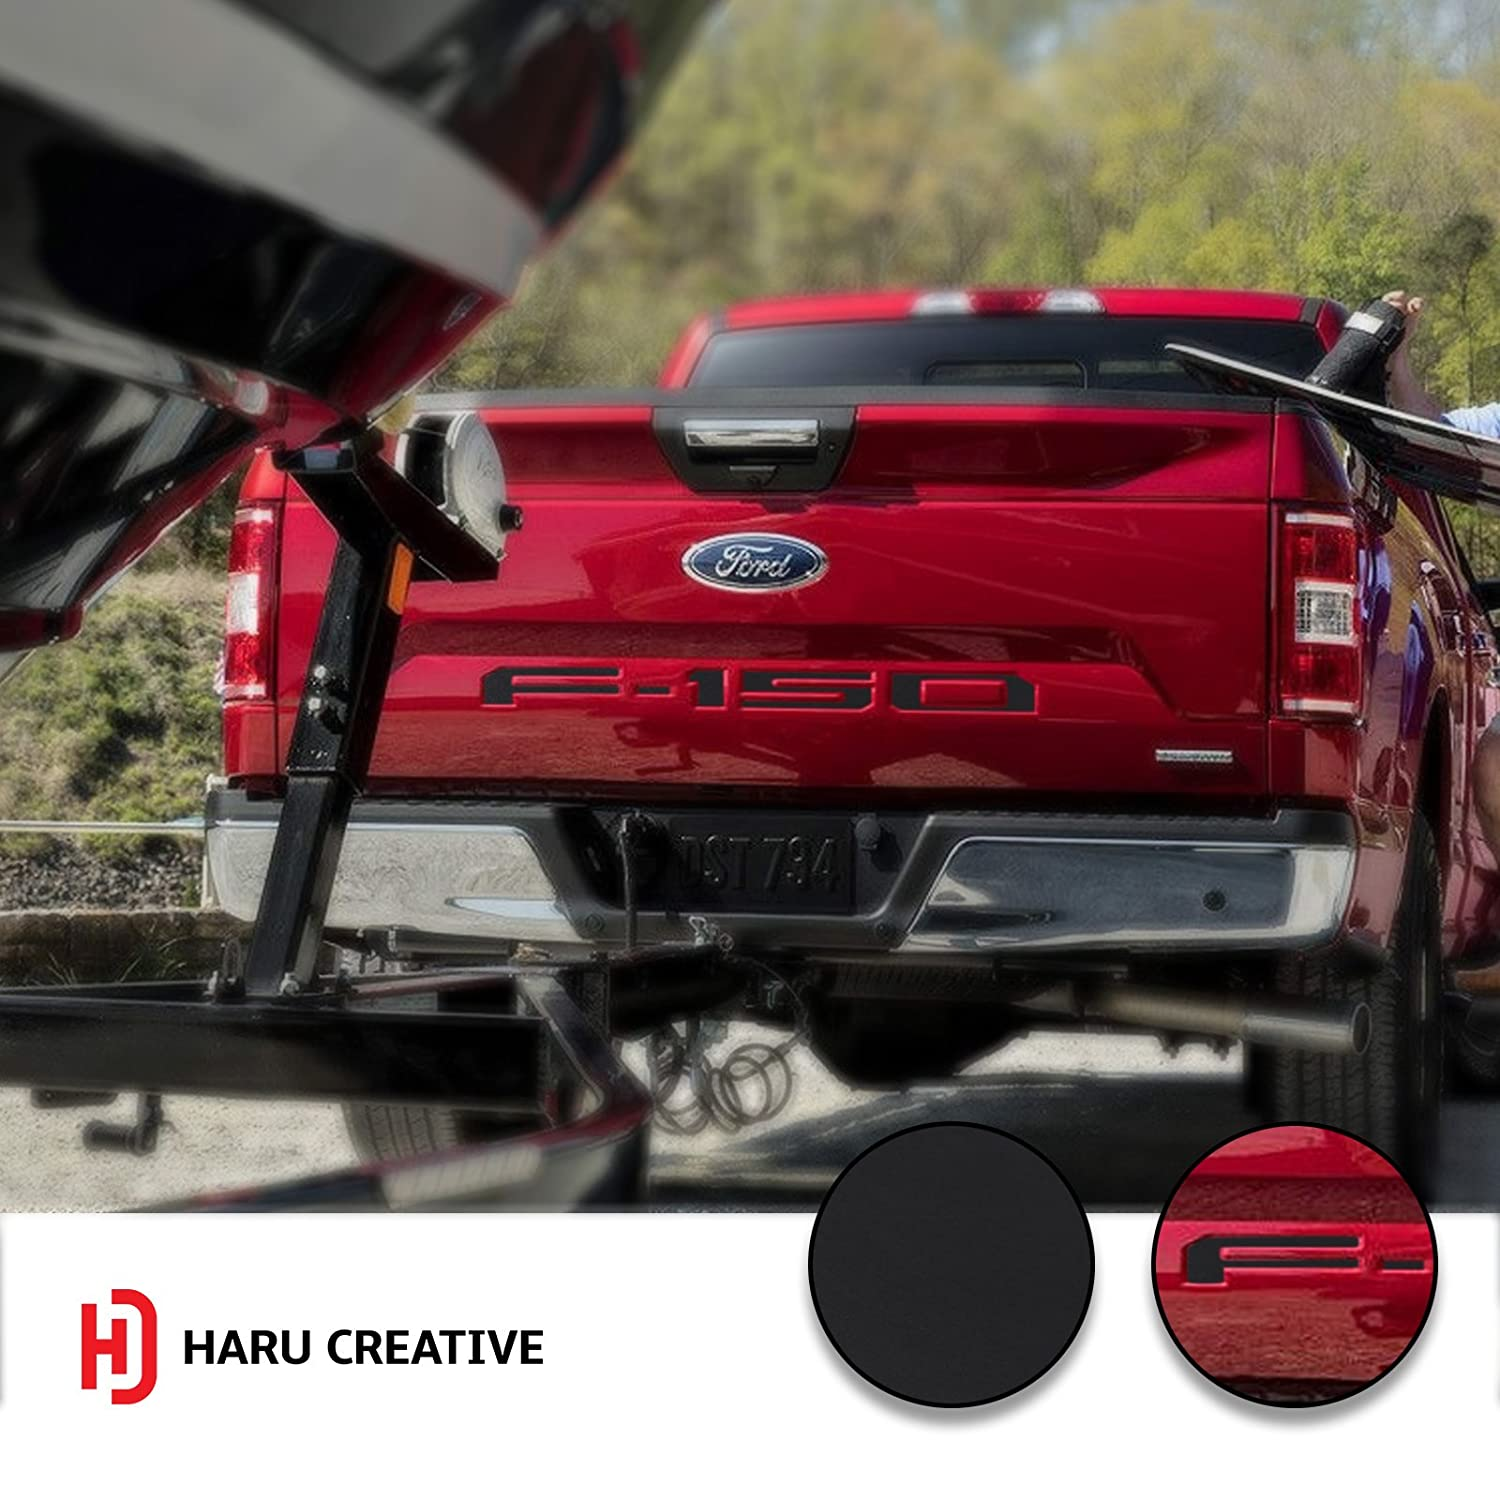 Rear Tailgate Letter Insert Overlay Decal Sticker Compatible with and Fits 2018 Ford F150 F-150 Matte Red Loyo Haru Creative